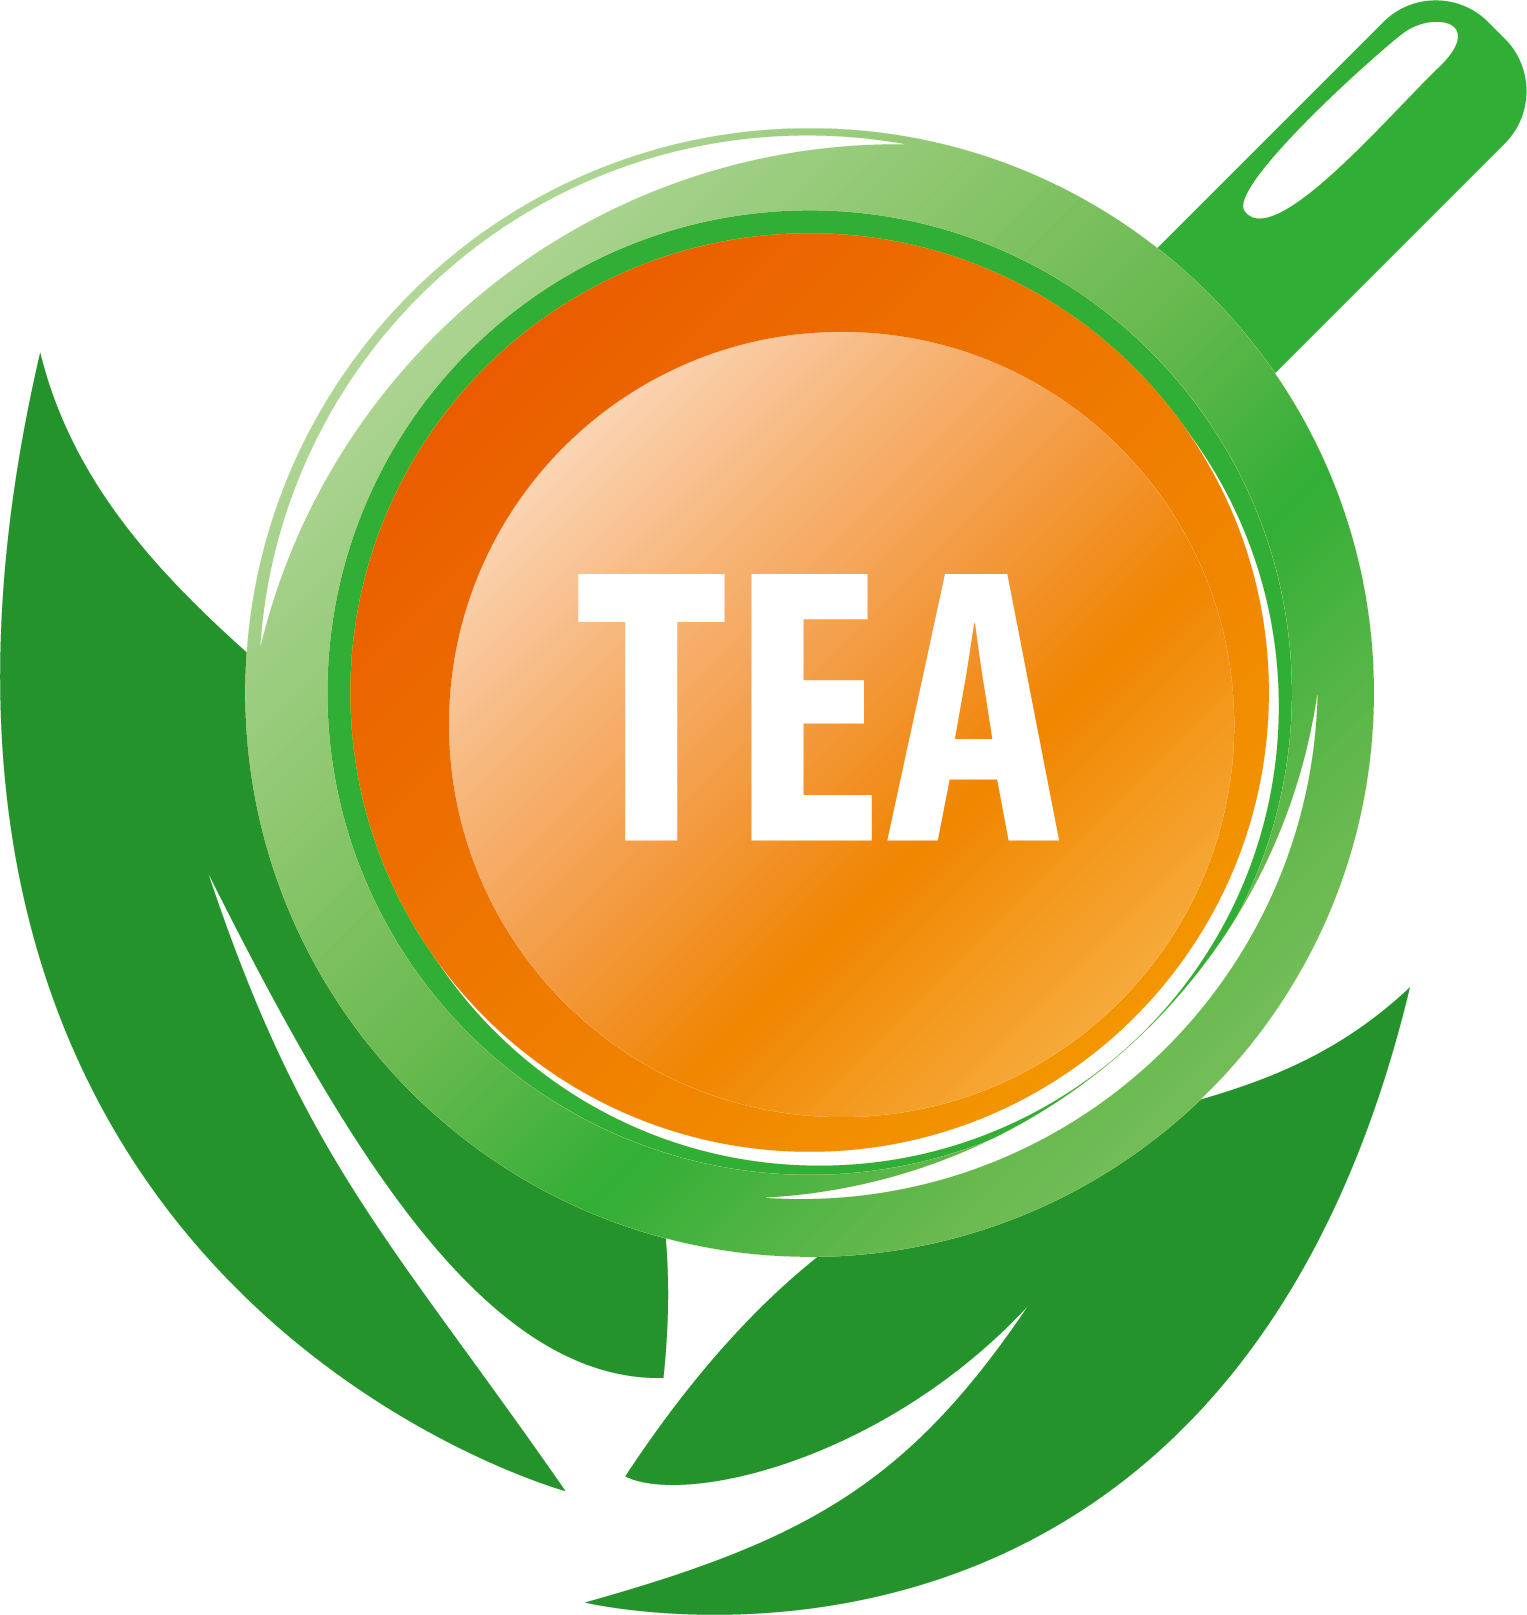 Produce vector illustration. Tea logo green cup